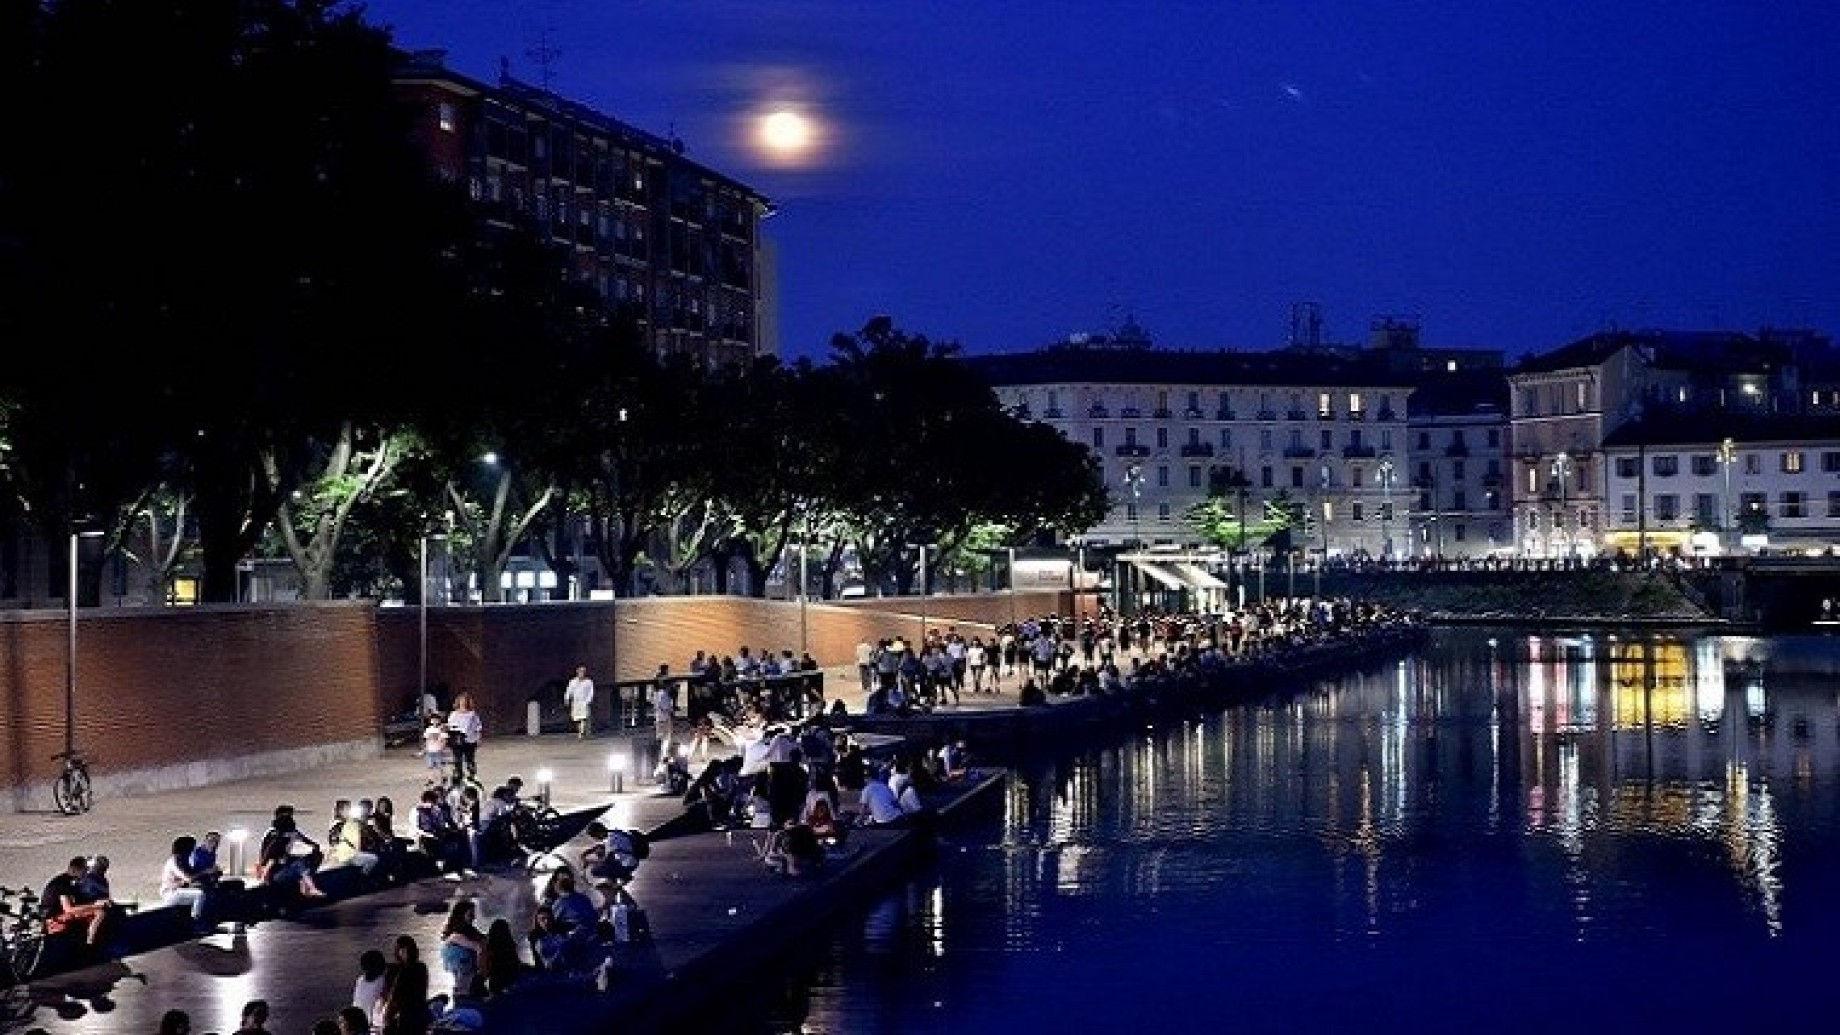 Movida in Darsena ecco i divieti